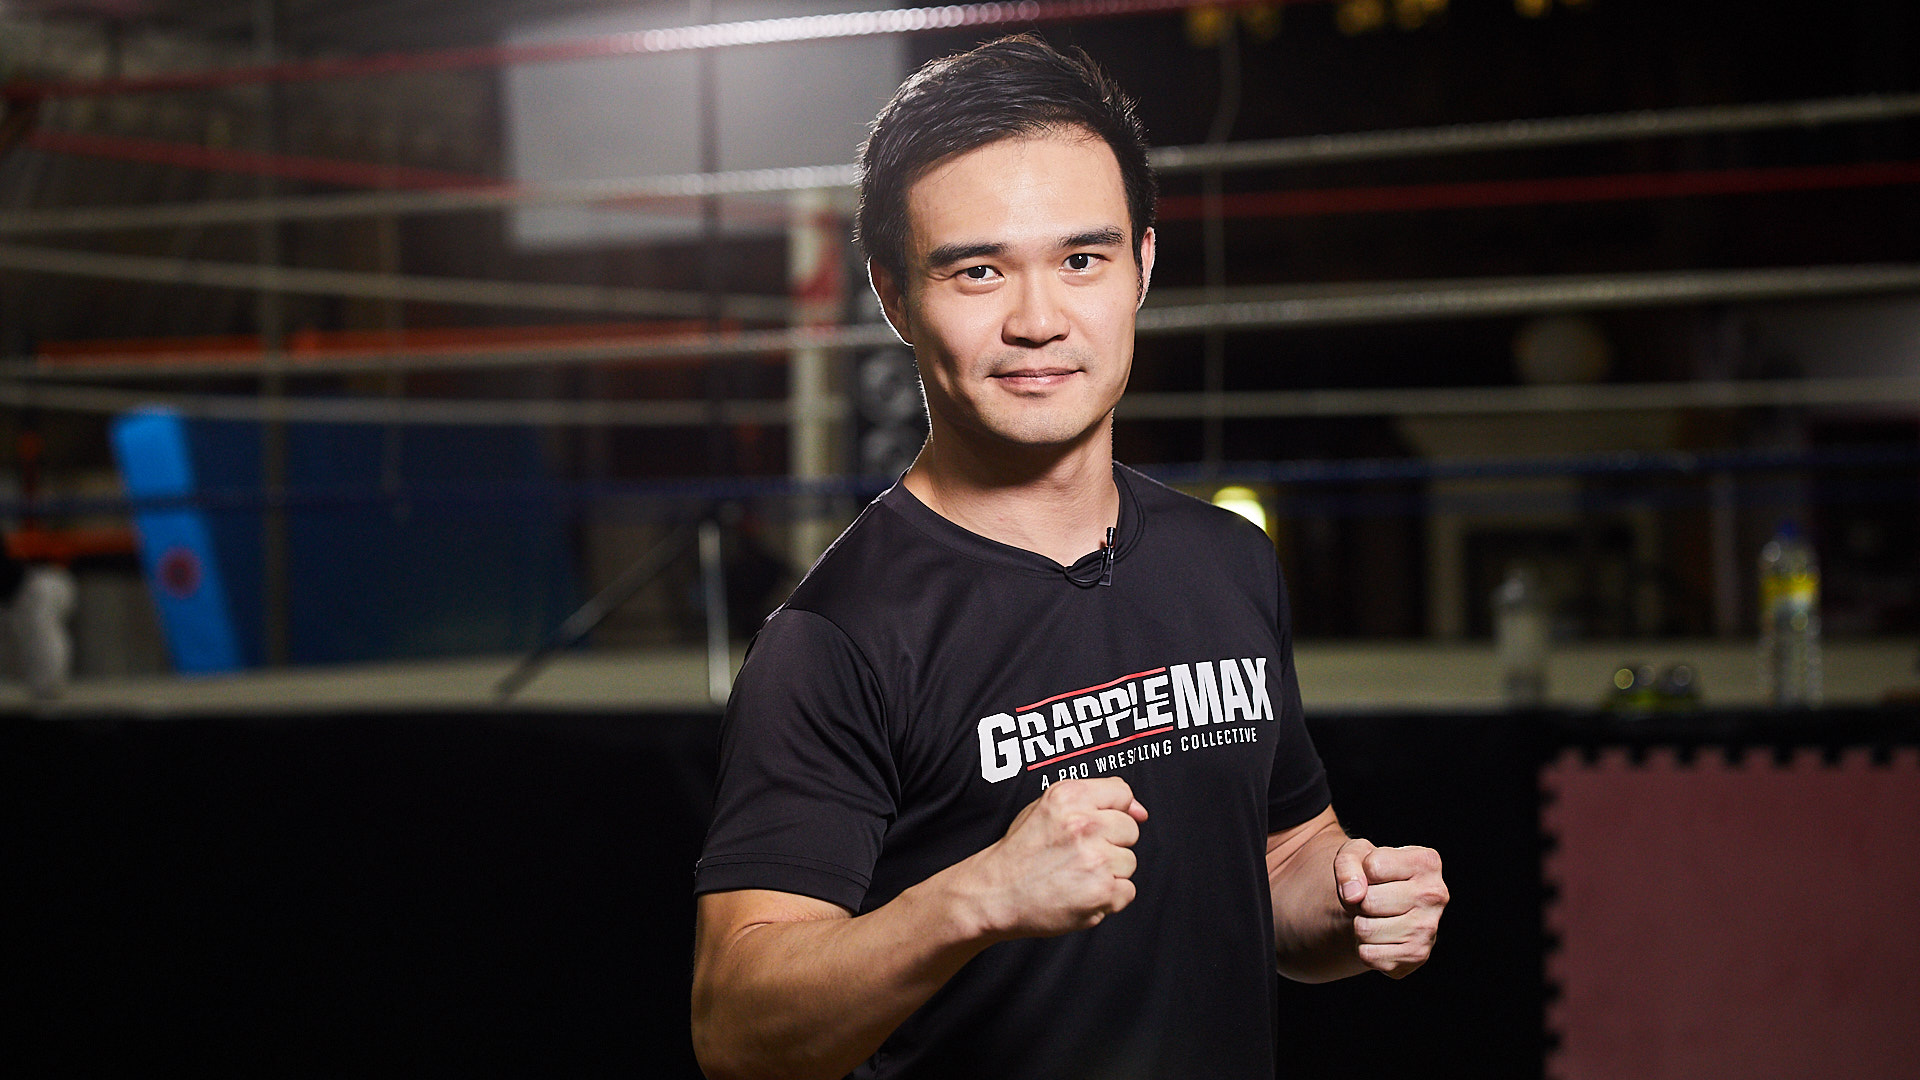 Greg Ho, founder of loc pro wrestling fitness school Grapple MAX